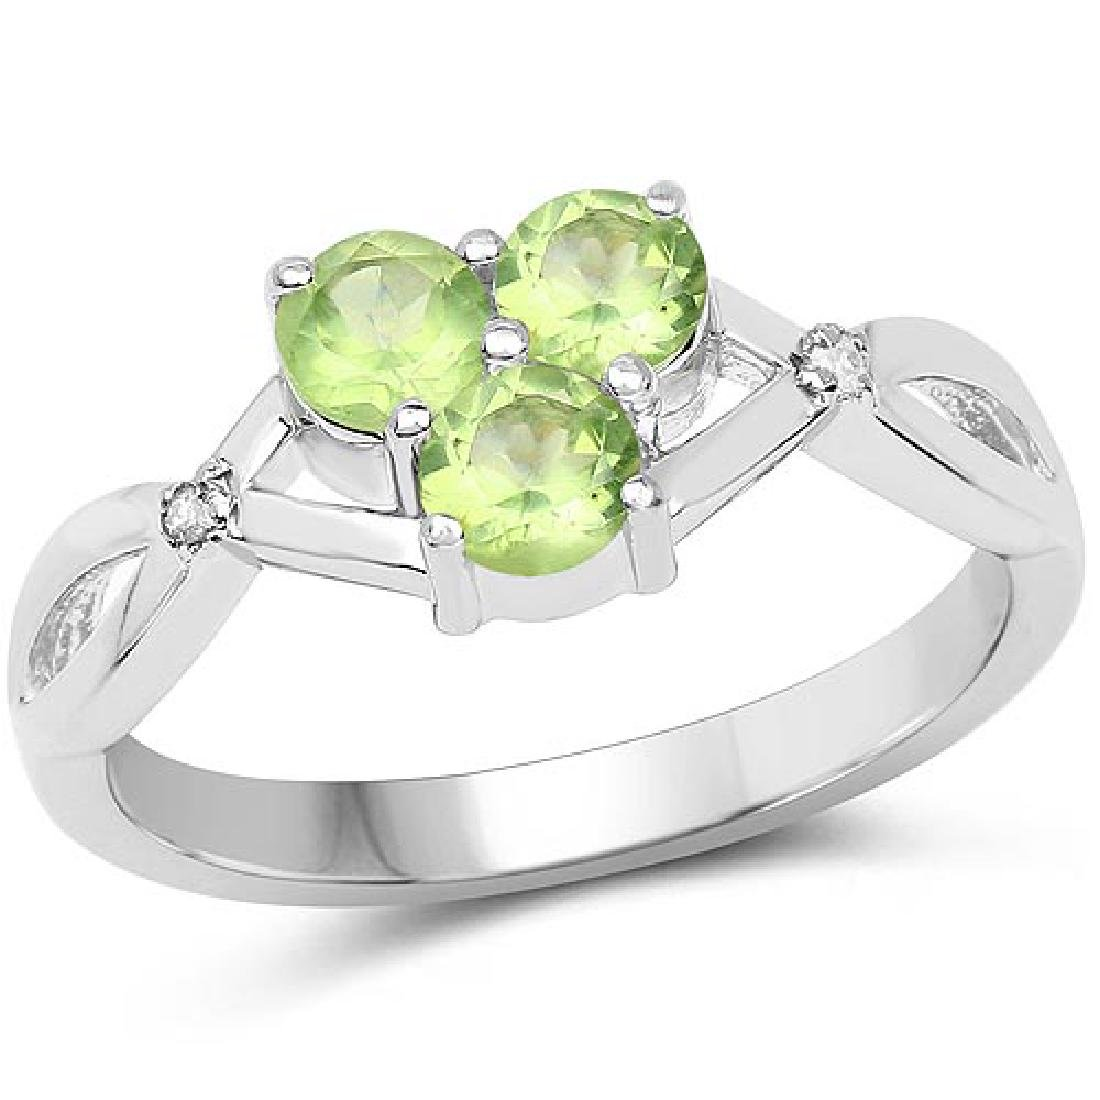 0.73 Carat Genuine Peridot and White Diamond .925 Sterl